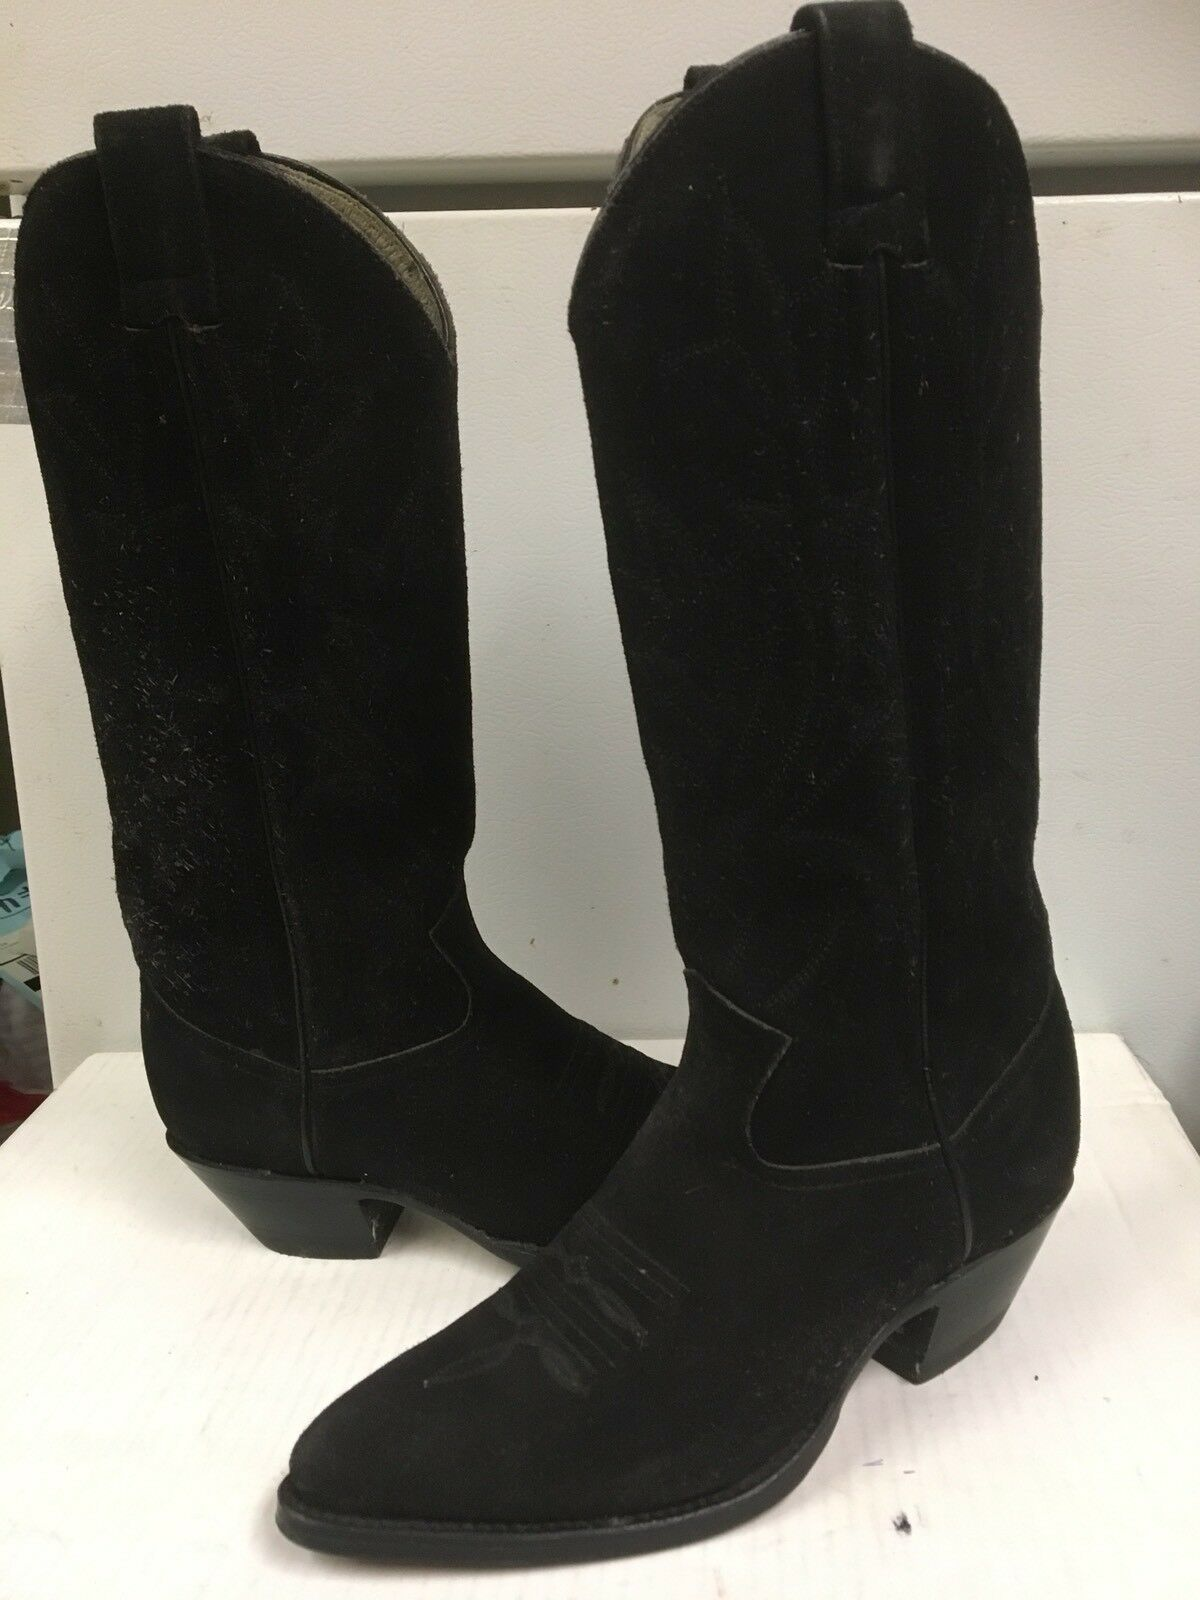 Creations by Lama Suede Women's Black Suede Lama Western Boots  2406 Size US 4.5 NEW 1bd33d